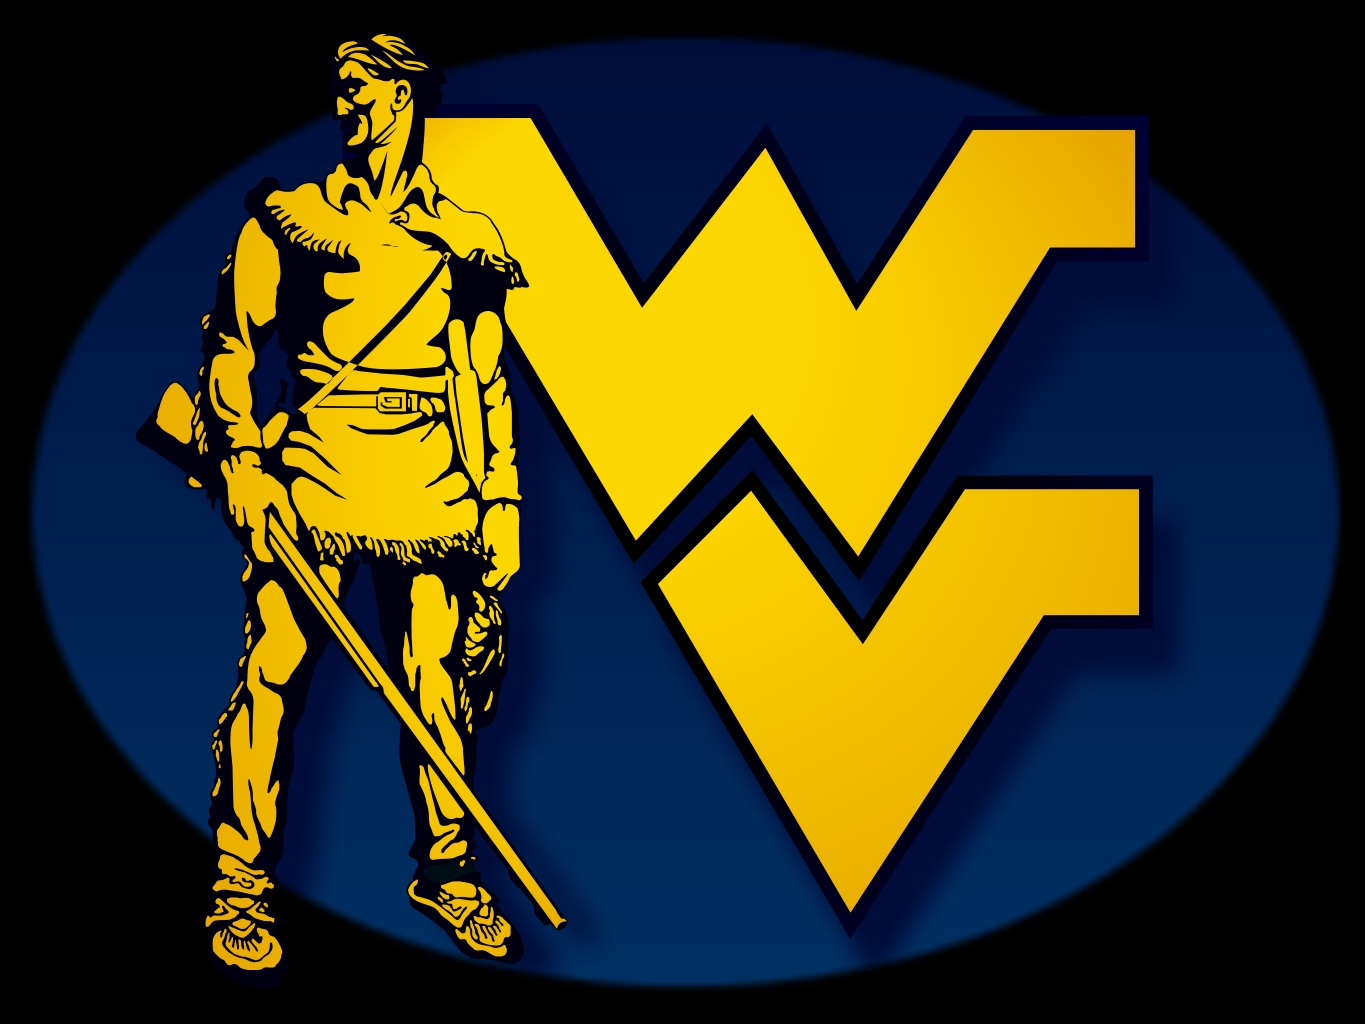 West virginia mountaineers Logos.